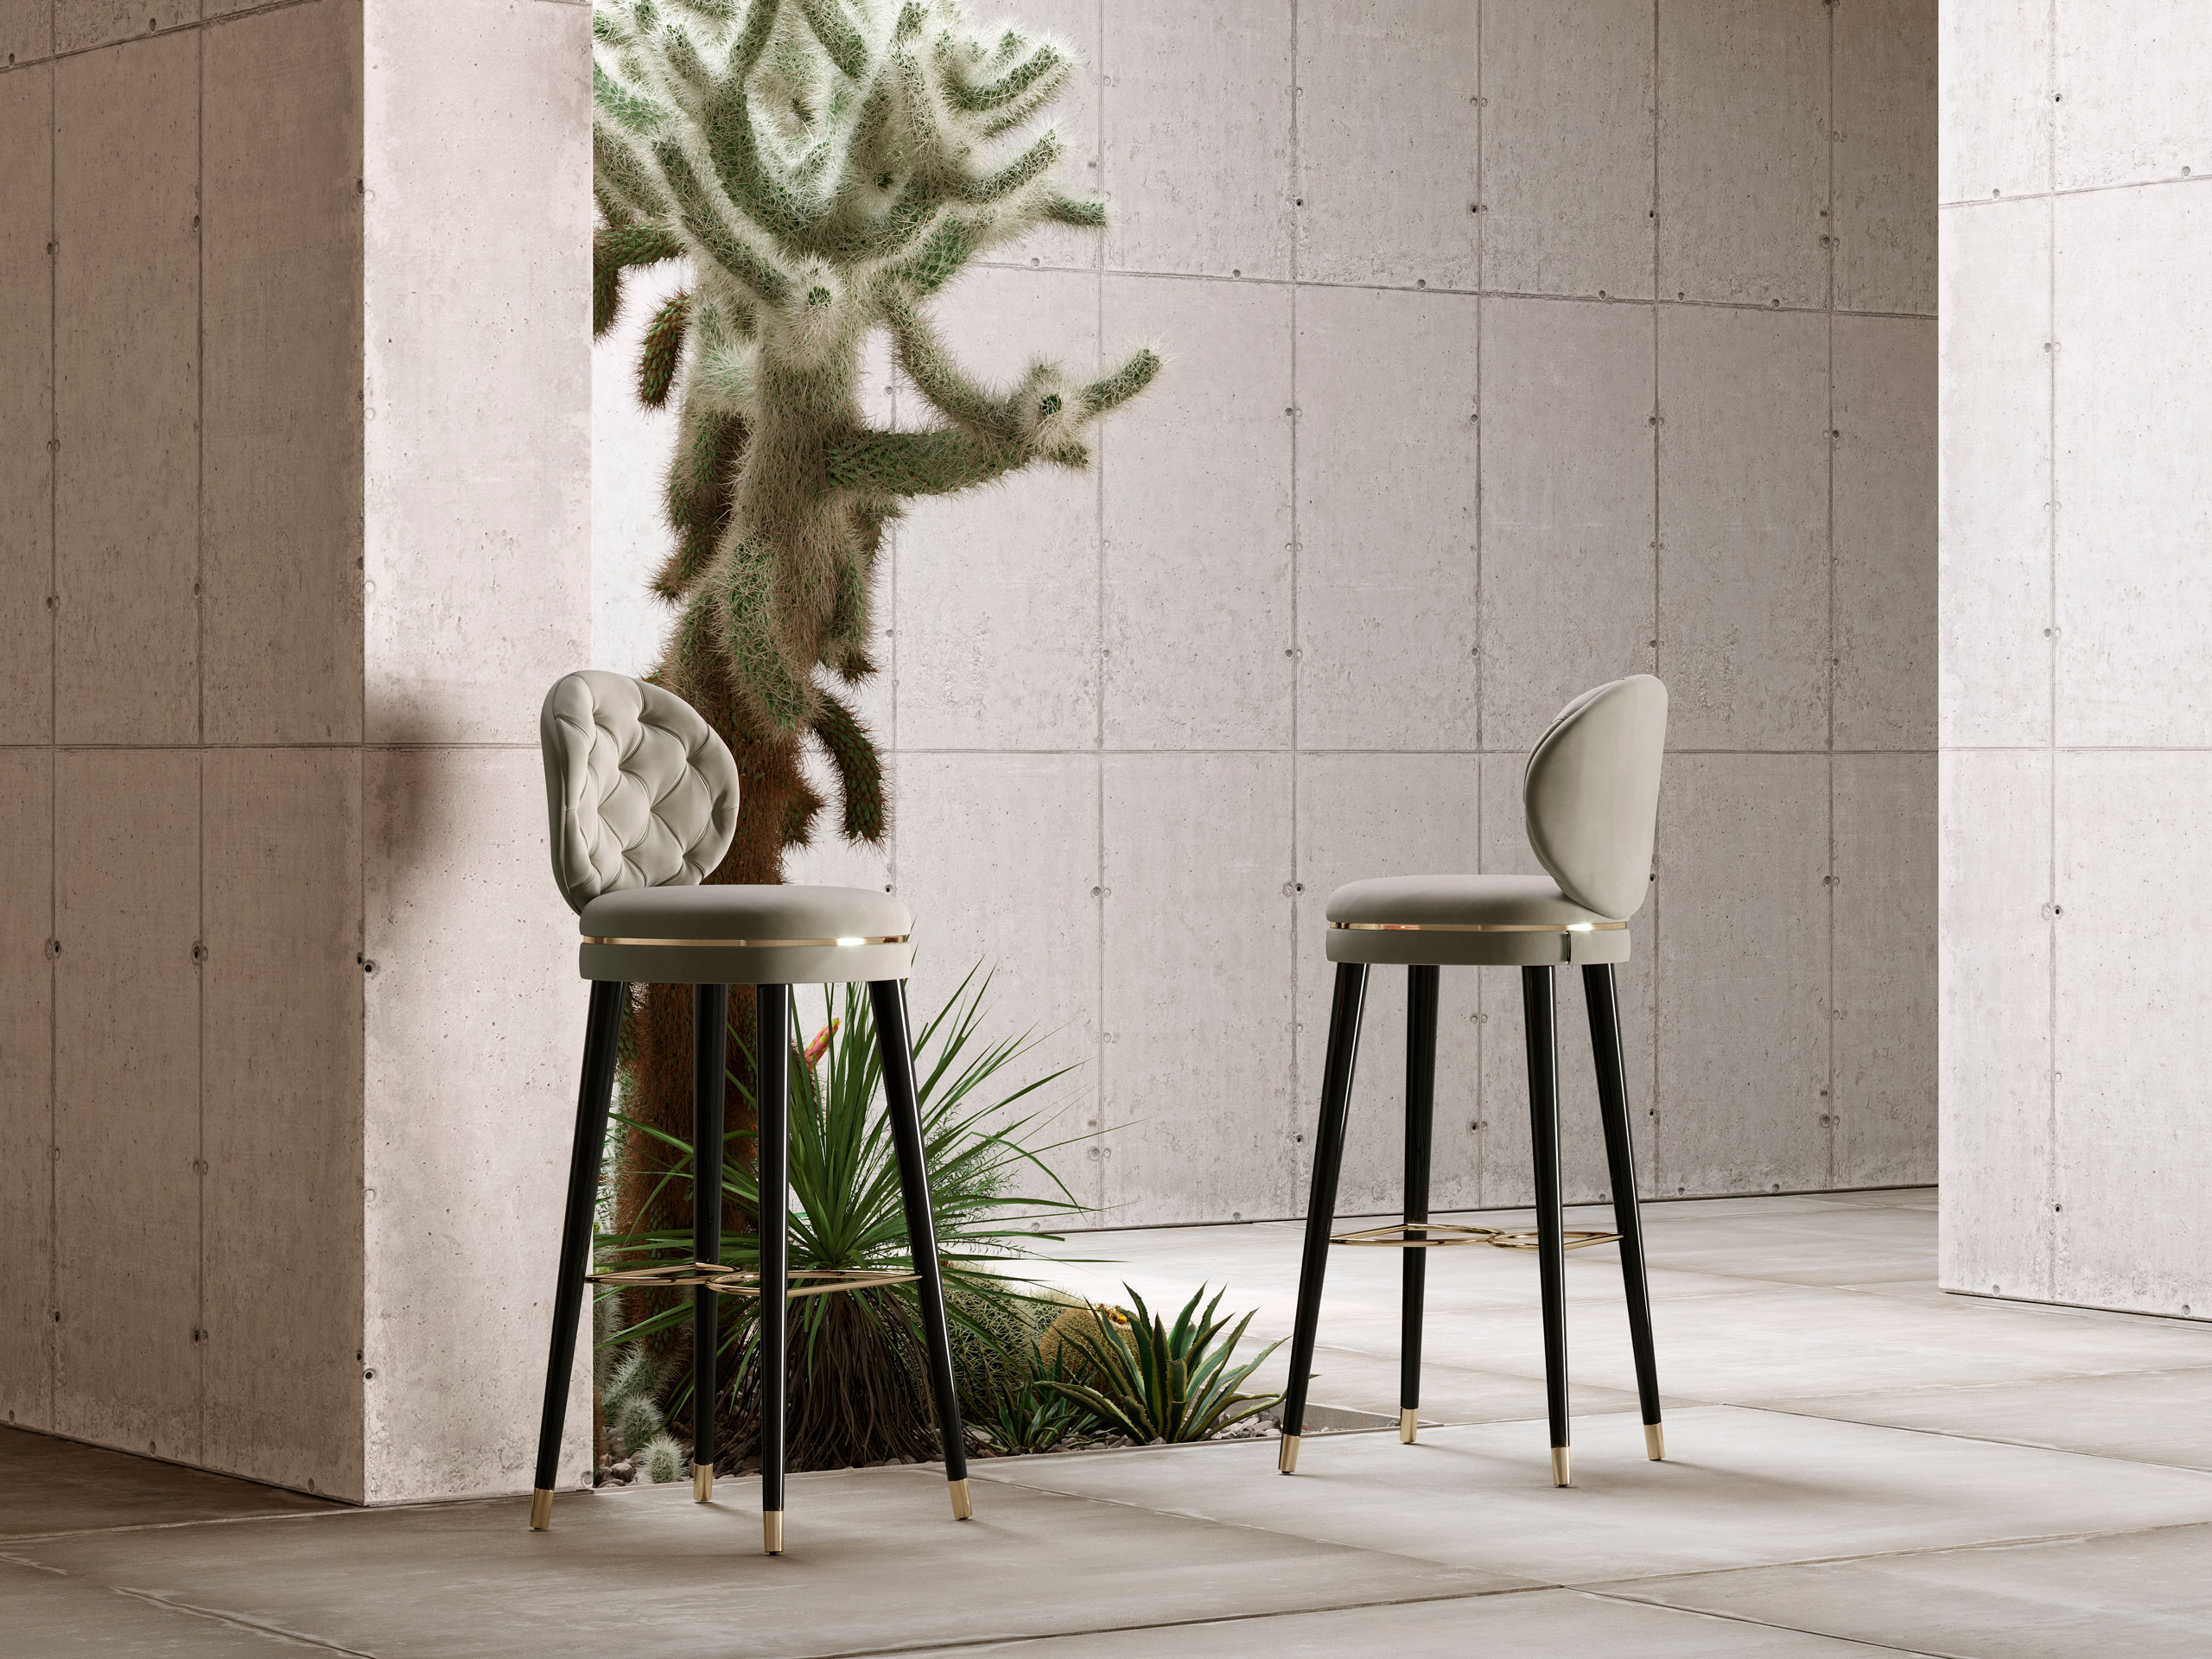 katy-bar-chair-domkapa-new-collection-2021-dining-room-decor-1